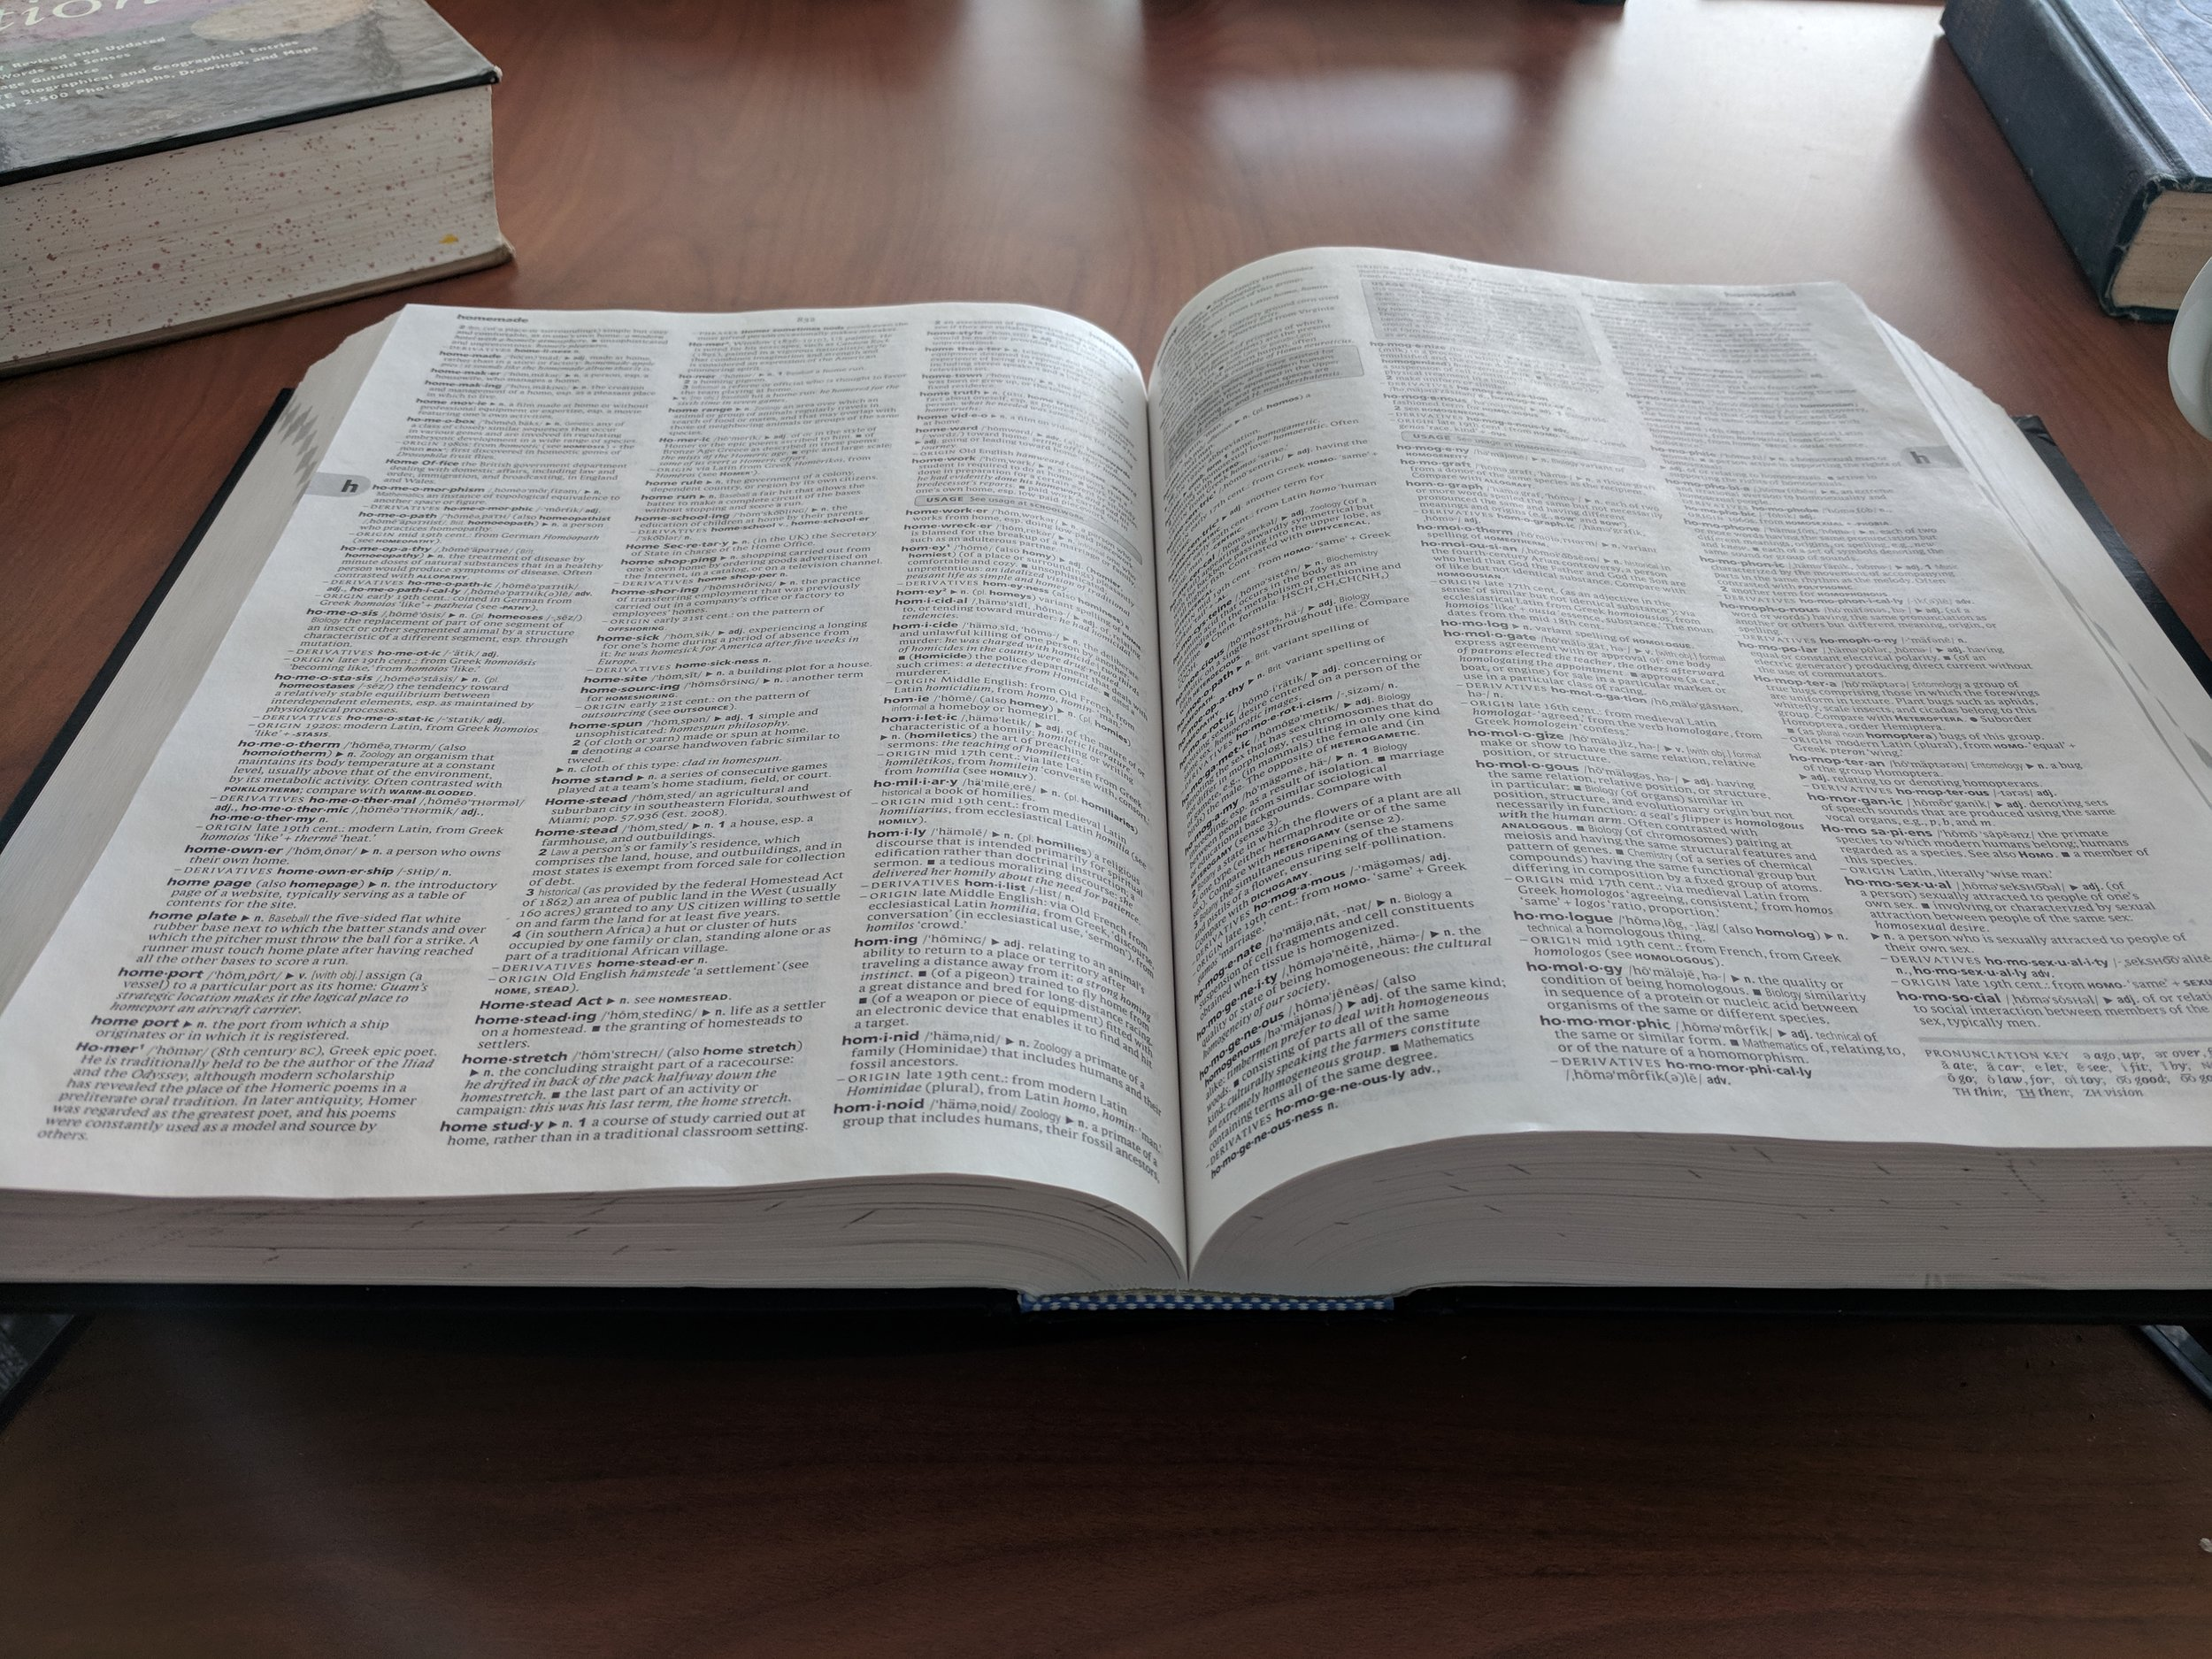 The dictionary we use at my classroom